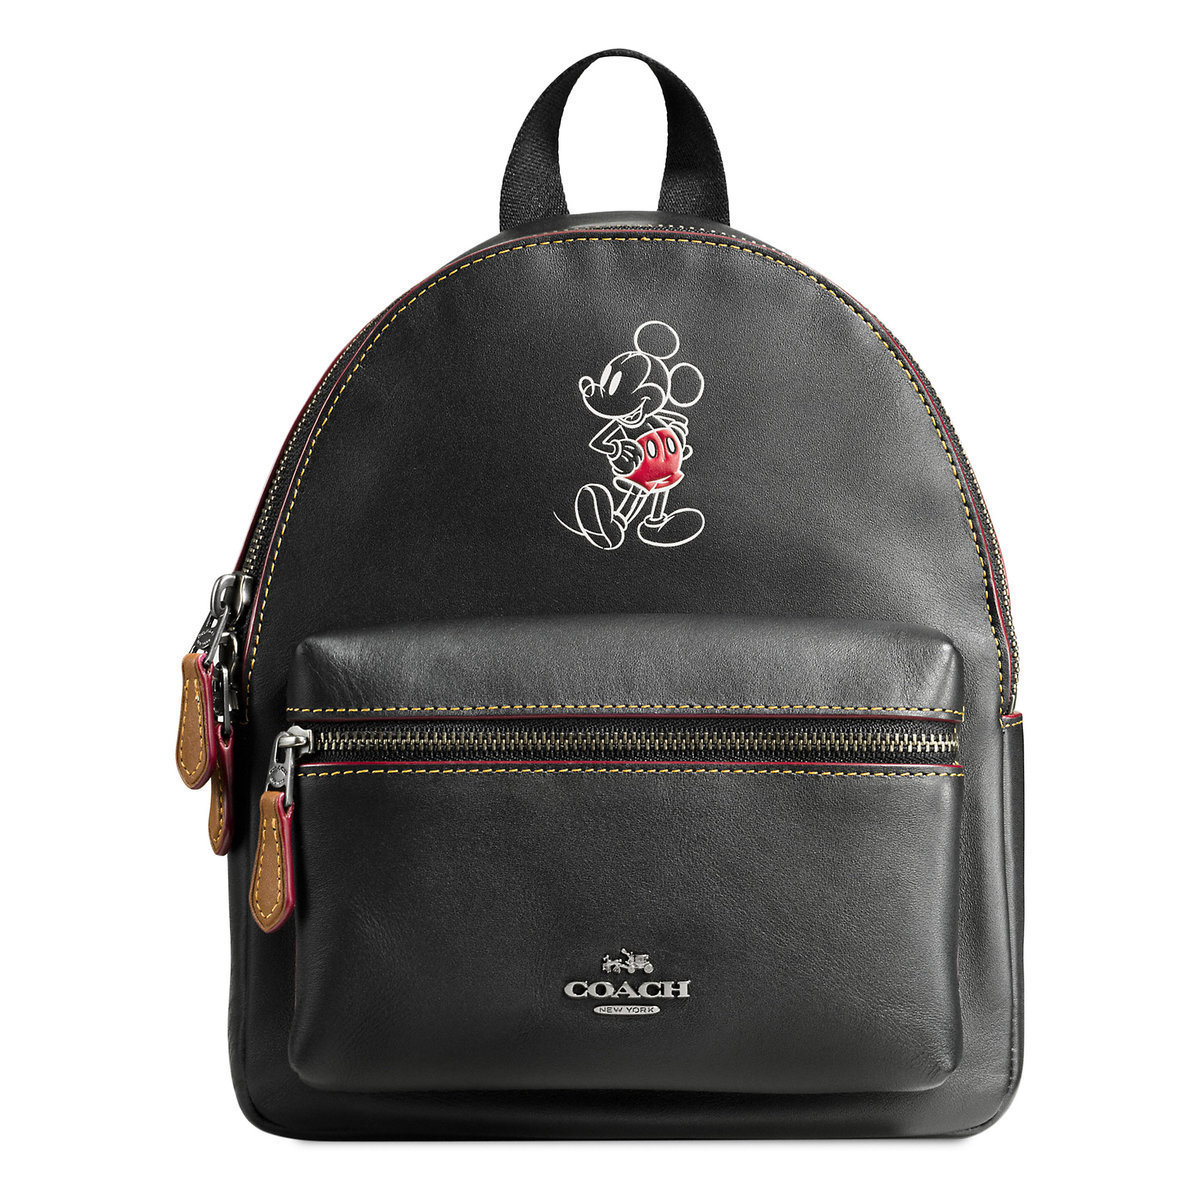 ◎送料込◎ Mickey Mouse Mini Charlie Leather Backpack by